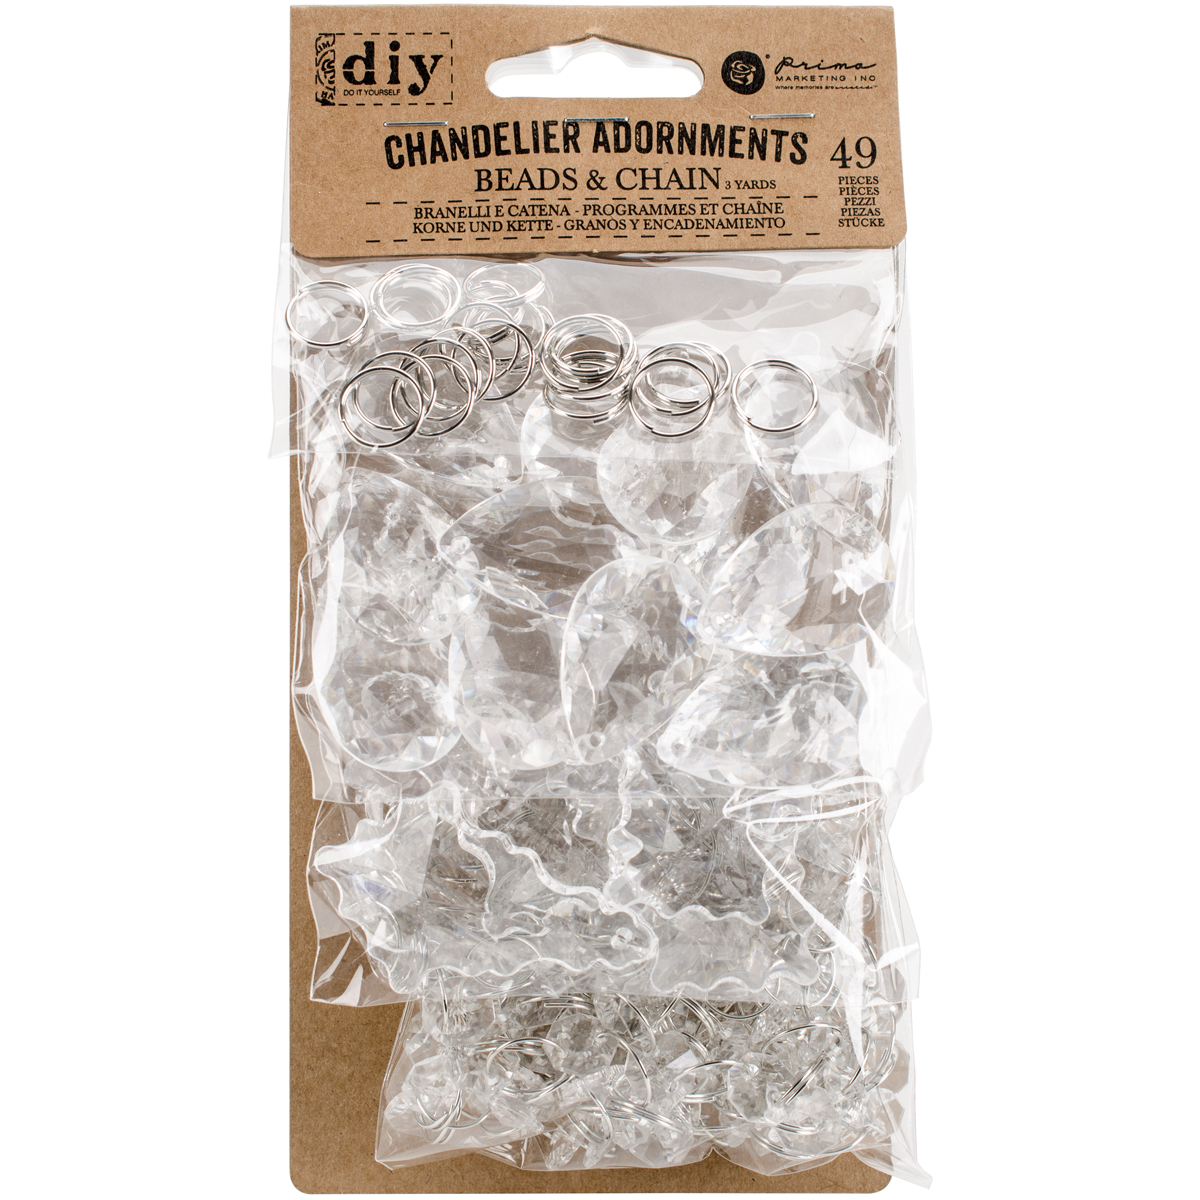 Prima Marketing DIY Chandelier Adornments, 49pk, Crystal Drops and Chain